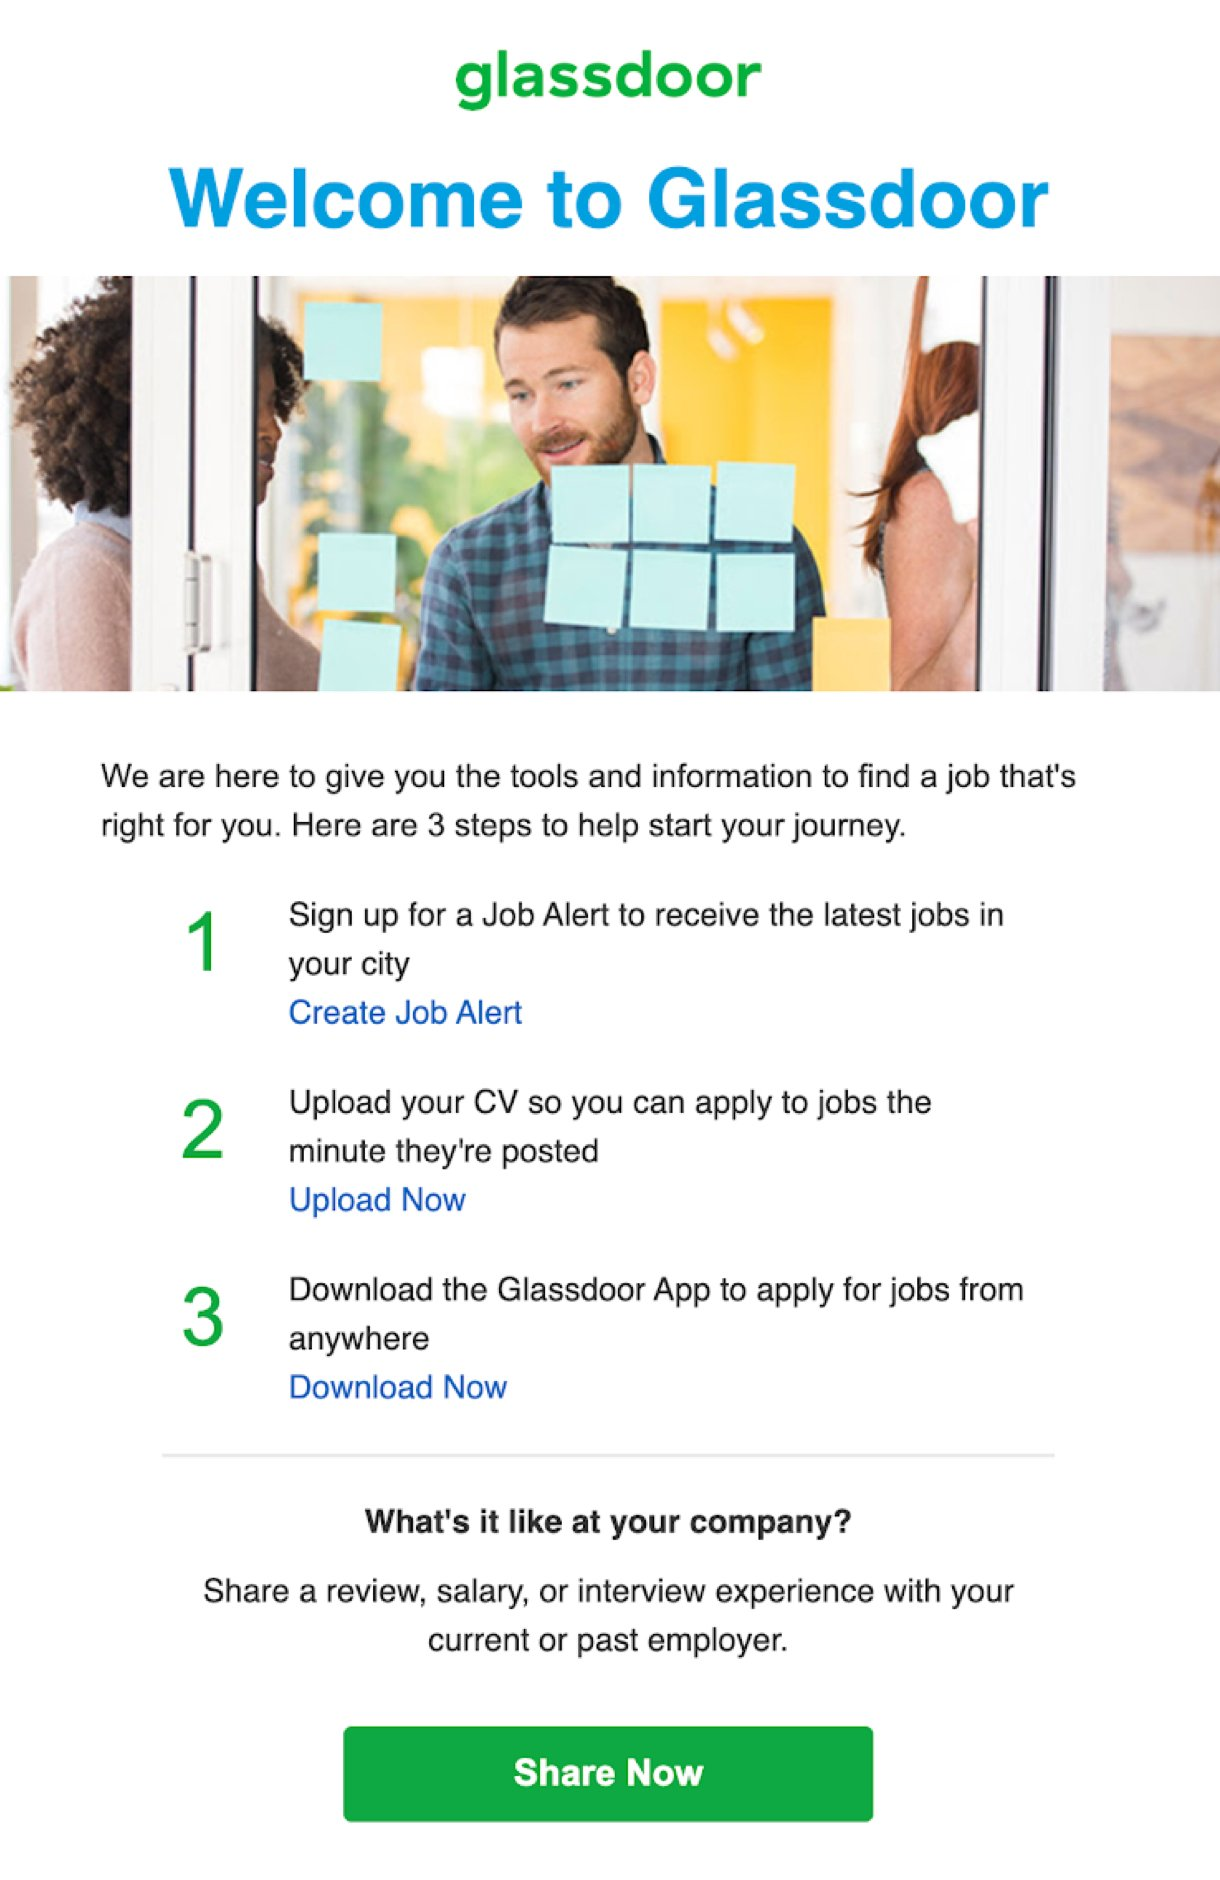 Glassdoor welcome email example people discussing in front of a glass door